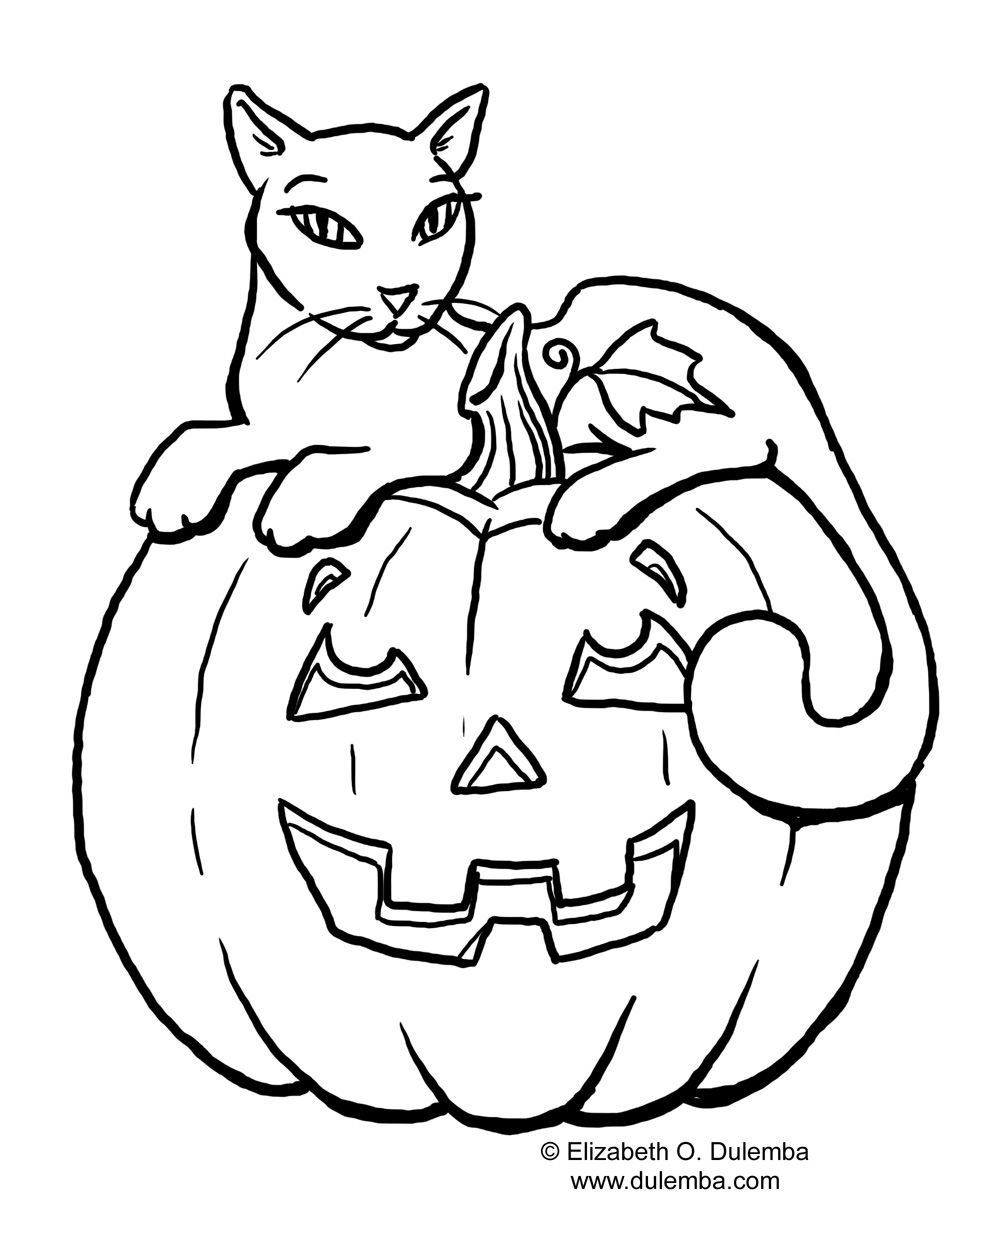 Jack o lantern and cat halloween embroidery patterns pinterest